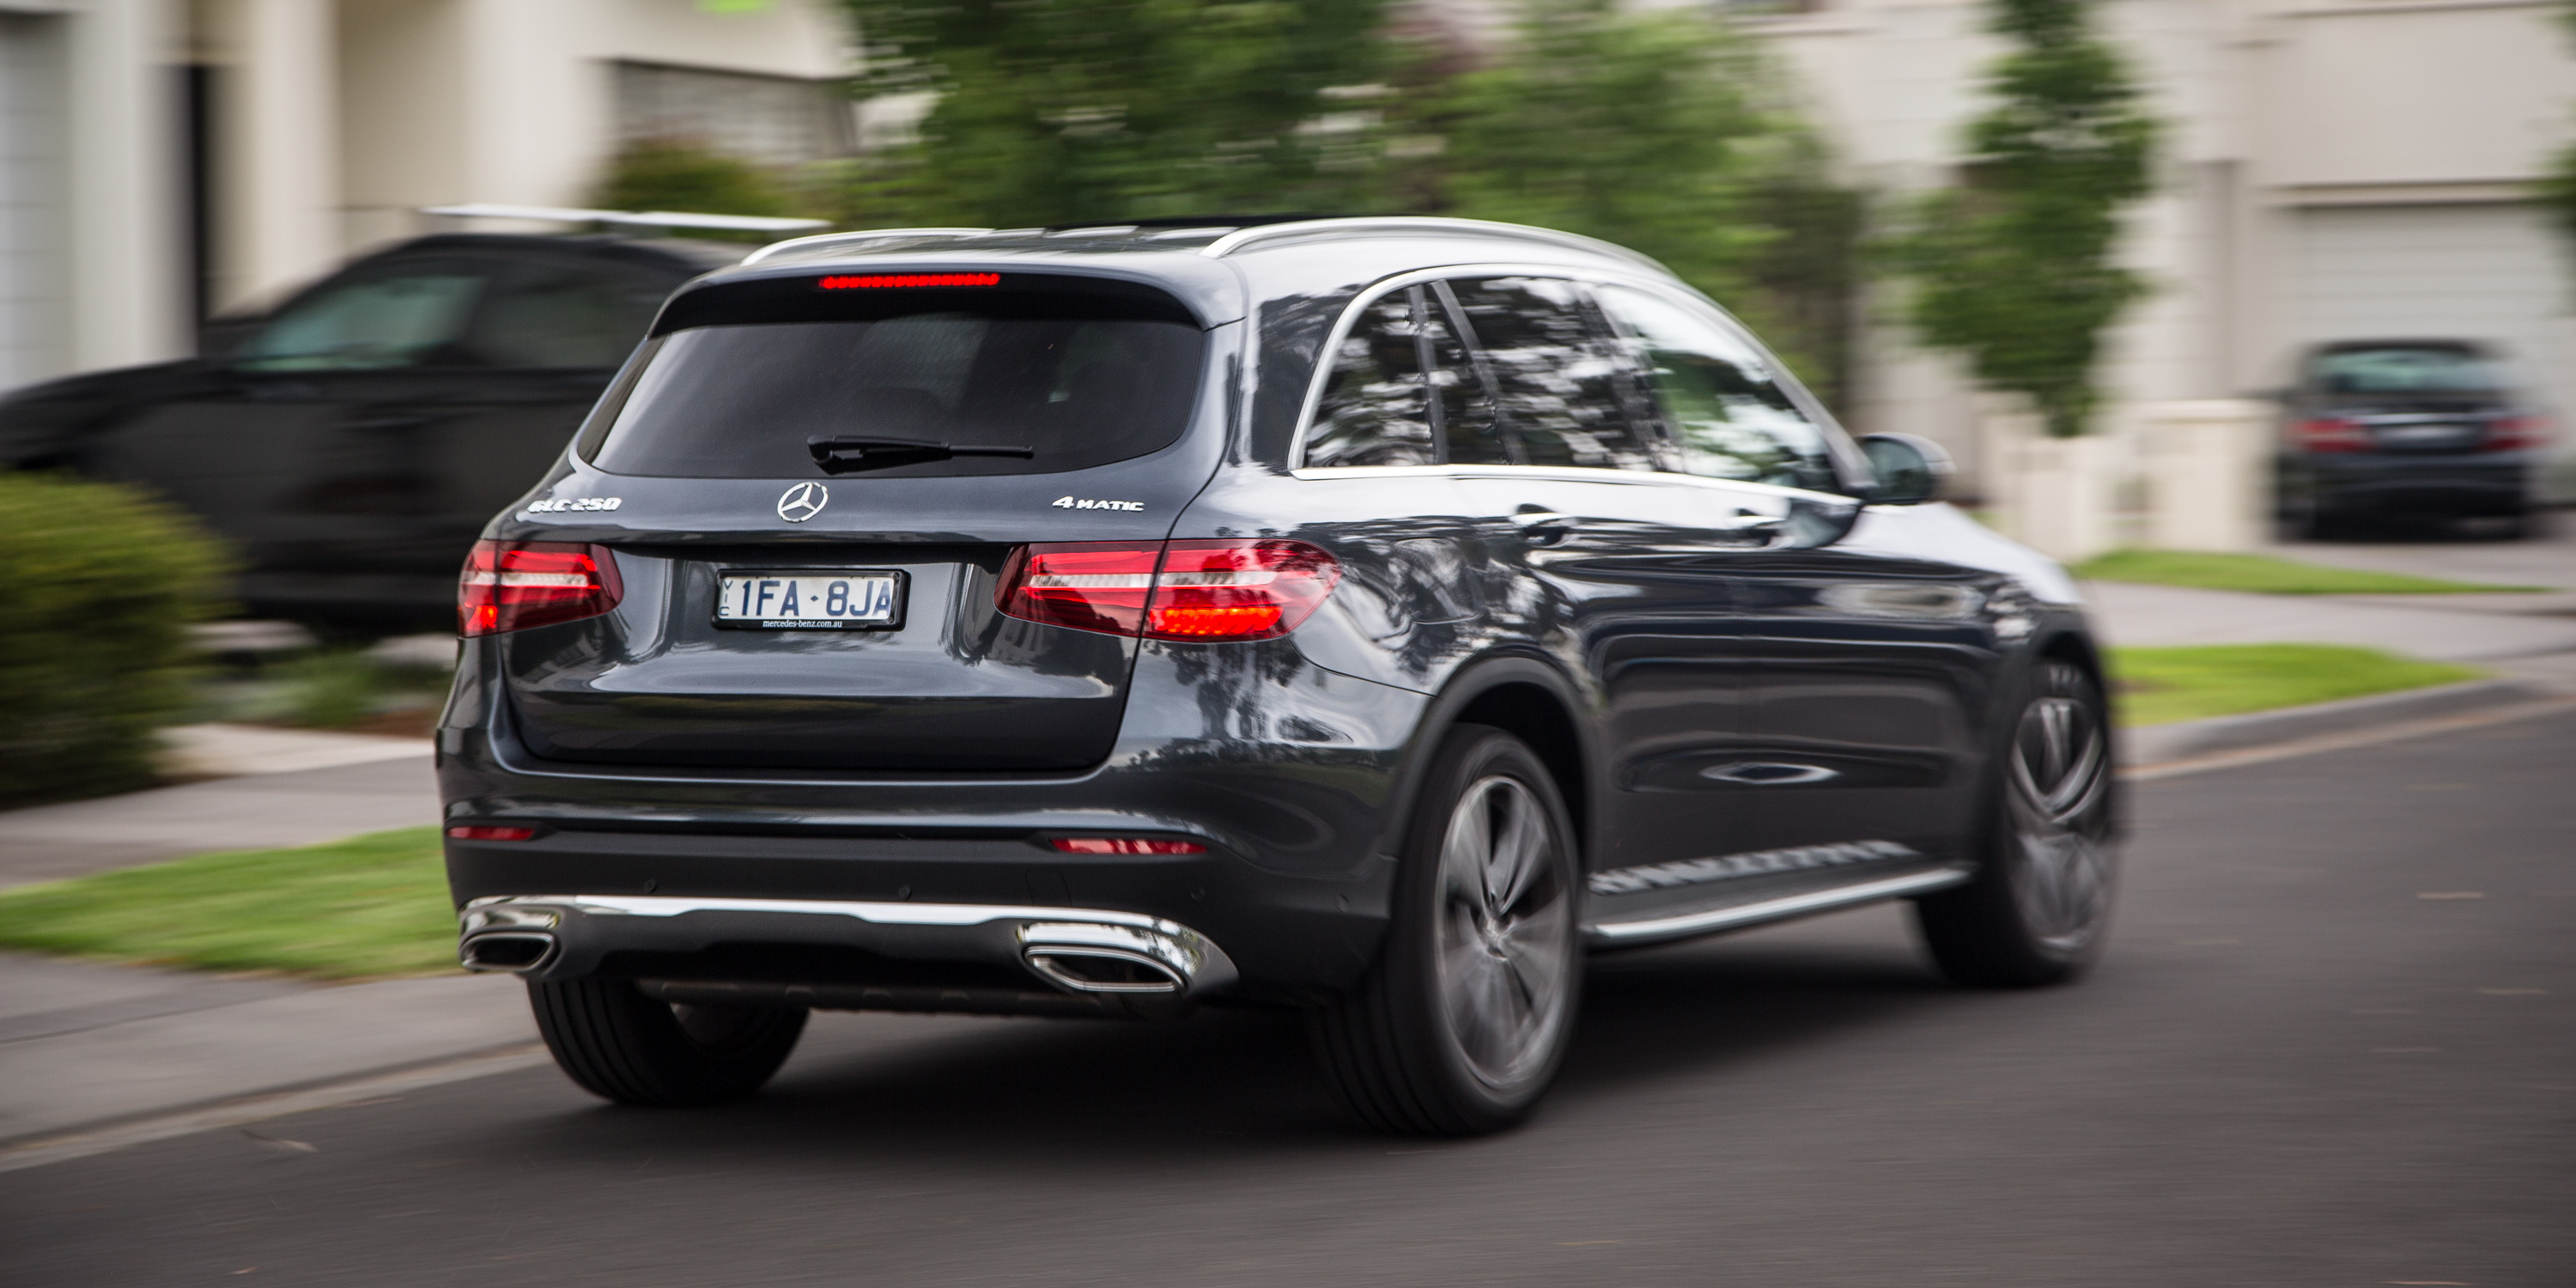 mercedes benz glc v bmw x3 comparison review photos 1